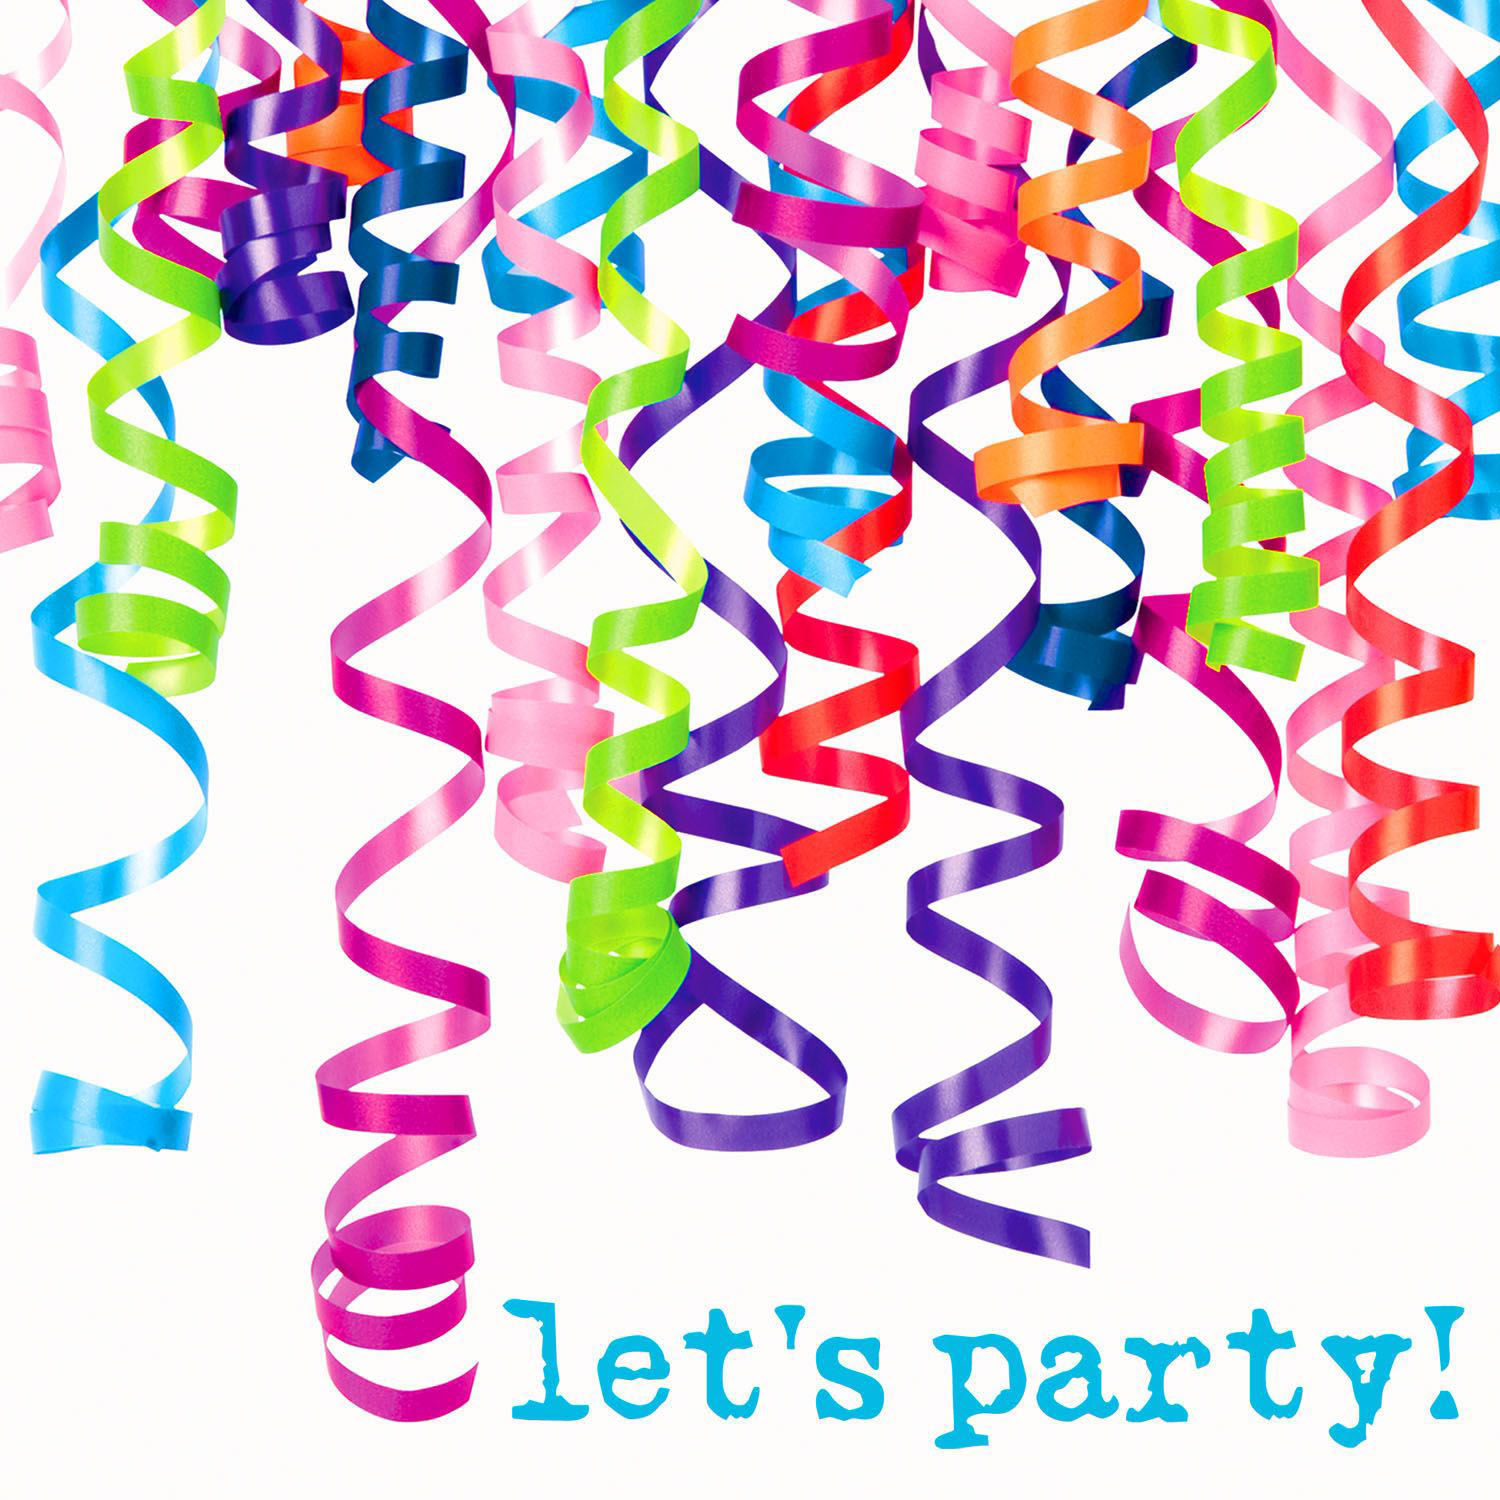 Party clip art free clipart images 4.